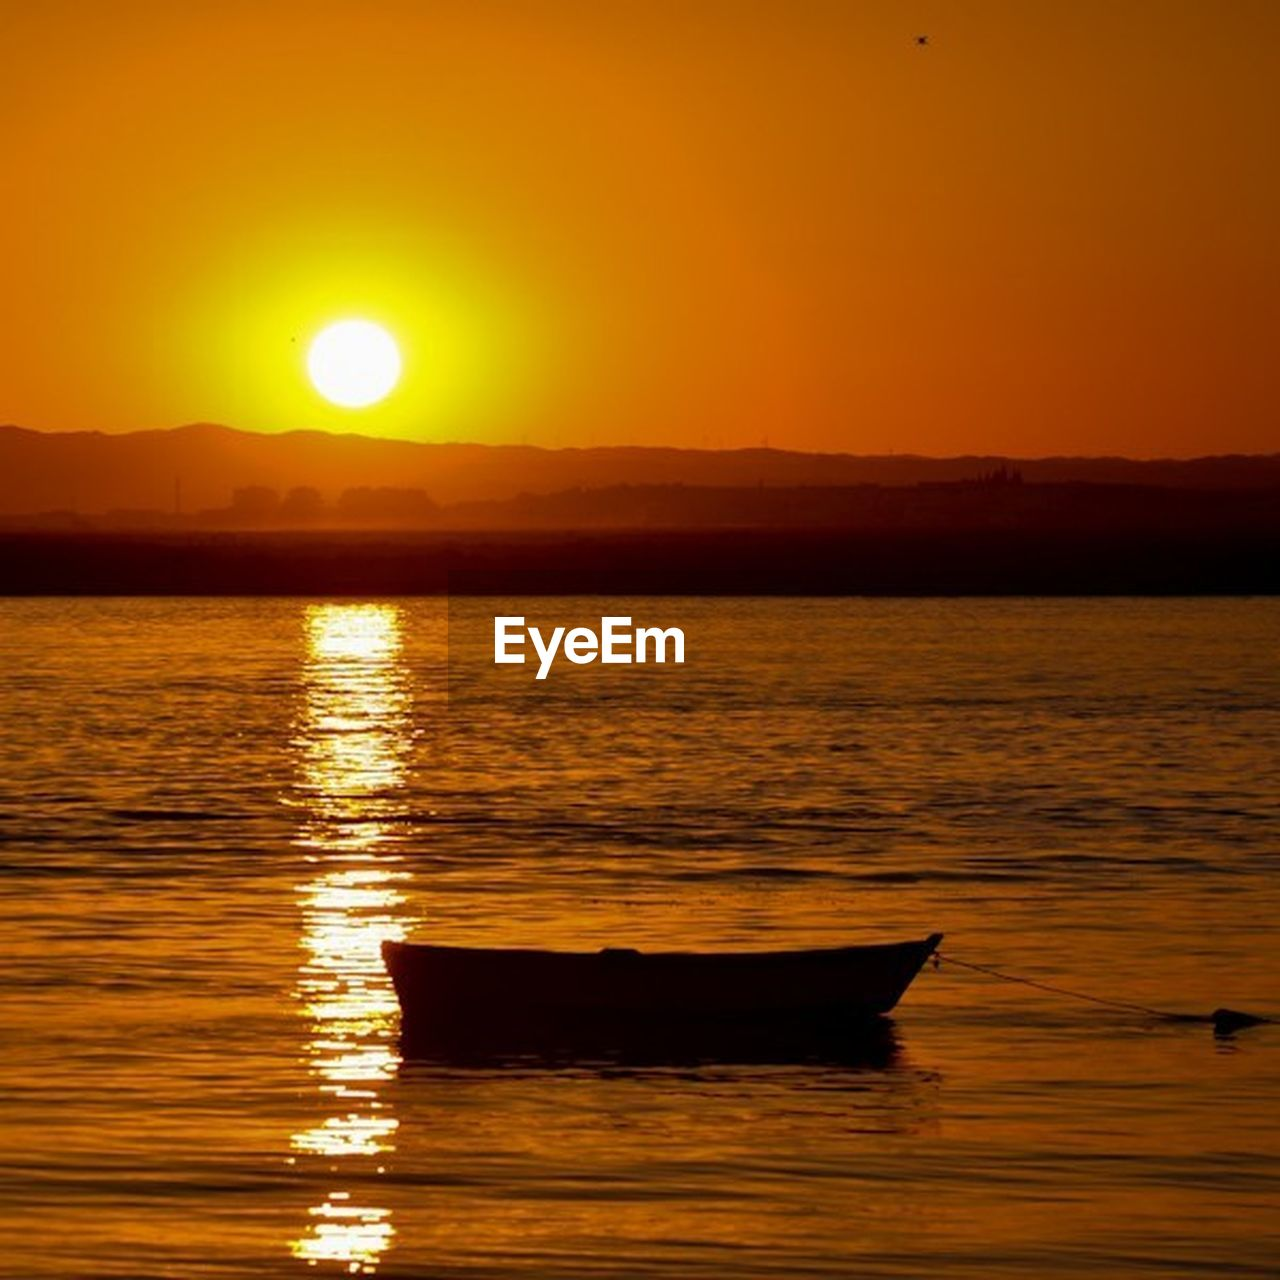 sunset, sun, reflection, orange color, sea, water, nature, scenics, beauty in nature, nautical vessel, tranquil scene, outdoors, silhouette, no people, tranquility, sky, horizon over water, day